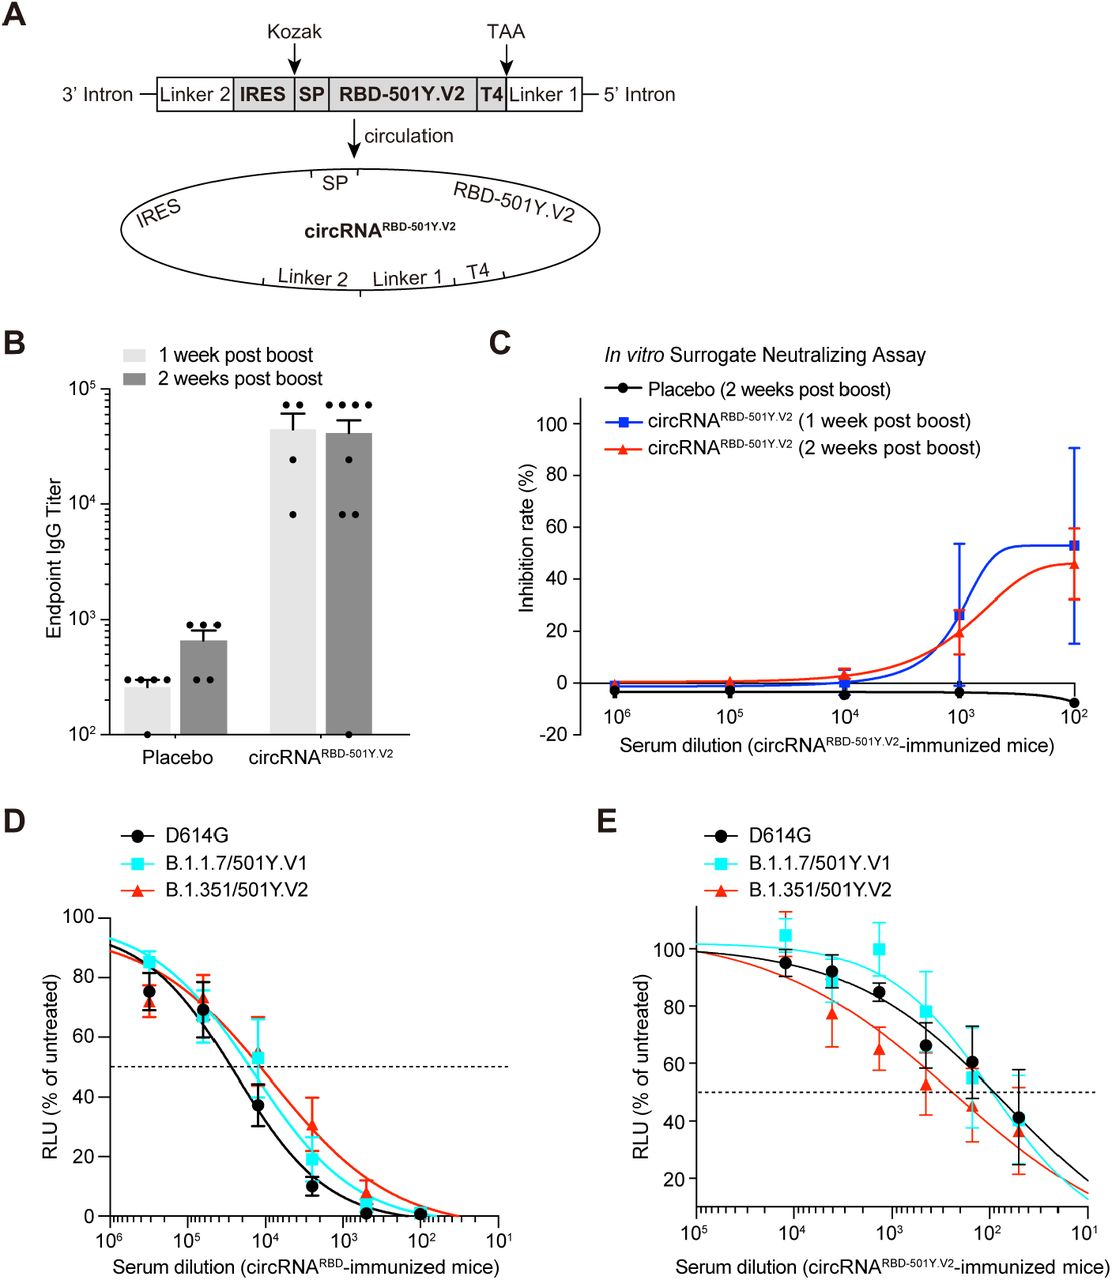 The susceptibility of SARS-CoV-2 D614G, B.1.1.7 or B.1.351variants to neutralizing antibodies elicited by the circRNA RBD or circRNA RBD-501Y.V2 vaccines in mice. ( A ) Schematic diagram of circRNA RBD-501Y.V2 circularization by the Group I ribozyme autocatalysis. SP, signal peptide sequence of human tPA protein. T4, the trimerization domain from bacteriophage T4 fibritin protein. RBD-501Y.V2, the RBD antigen harboring the K417N-E484K-N501Y mutations in SARS-CoV-2 501Y.V2 variant. ( B ) Measuring the SARS-CoV-2 specific IgG antibody titer with ELISA. The data was shown as the mean ± S.E.M. Each symbol represents an individual mouse. ( C ) Sigmodal curve diagram of the inhibition rate by sera of immunized mice with surrogate virus neutralization assay. Sera from circRNA RBD-501Y.V2 (50 μg) immunized mice were collected at 1 week or 2 weeks post boost. The data were shown as the mean ± S.E.M. ( D ) Neutralization assay of VSV-based D614G, B.1.1.7 or B.1.351 pseudovirus with the serum of mice immunized with circRNA RBD vaccines. The serum samples were collected at 5 weeks post boost. The data were shown as the mean ± S.E.M. (n = 5). ( E ) Neutralization assay of VSV-based D614G, B.1.1.7 or B.1.351 pseudovirus with the serum of mice immunized with circRNA RBD-501Y.V2 vaccines. The serum samples were collected at 1 week post boost. The data were shown as the mean ± S.E.M. (n = 5).